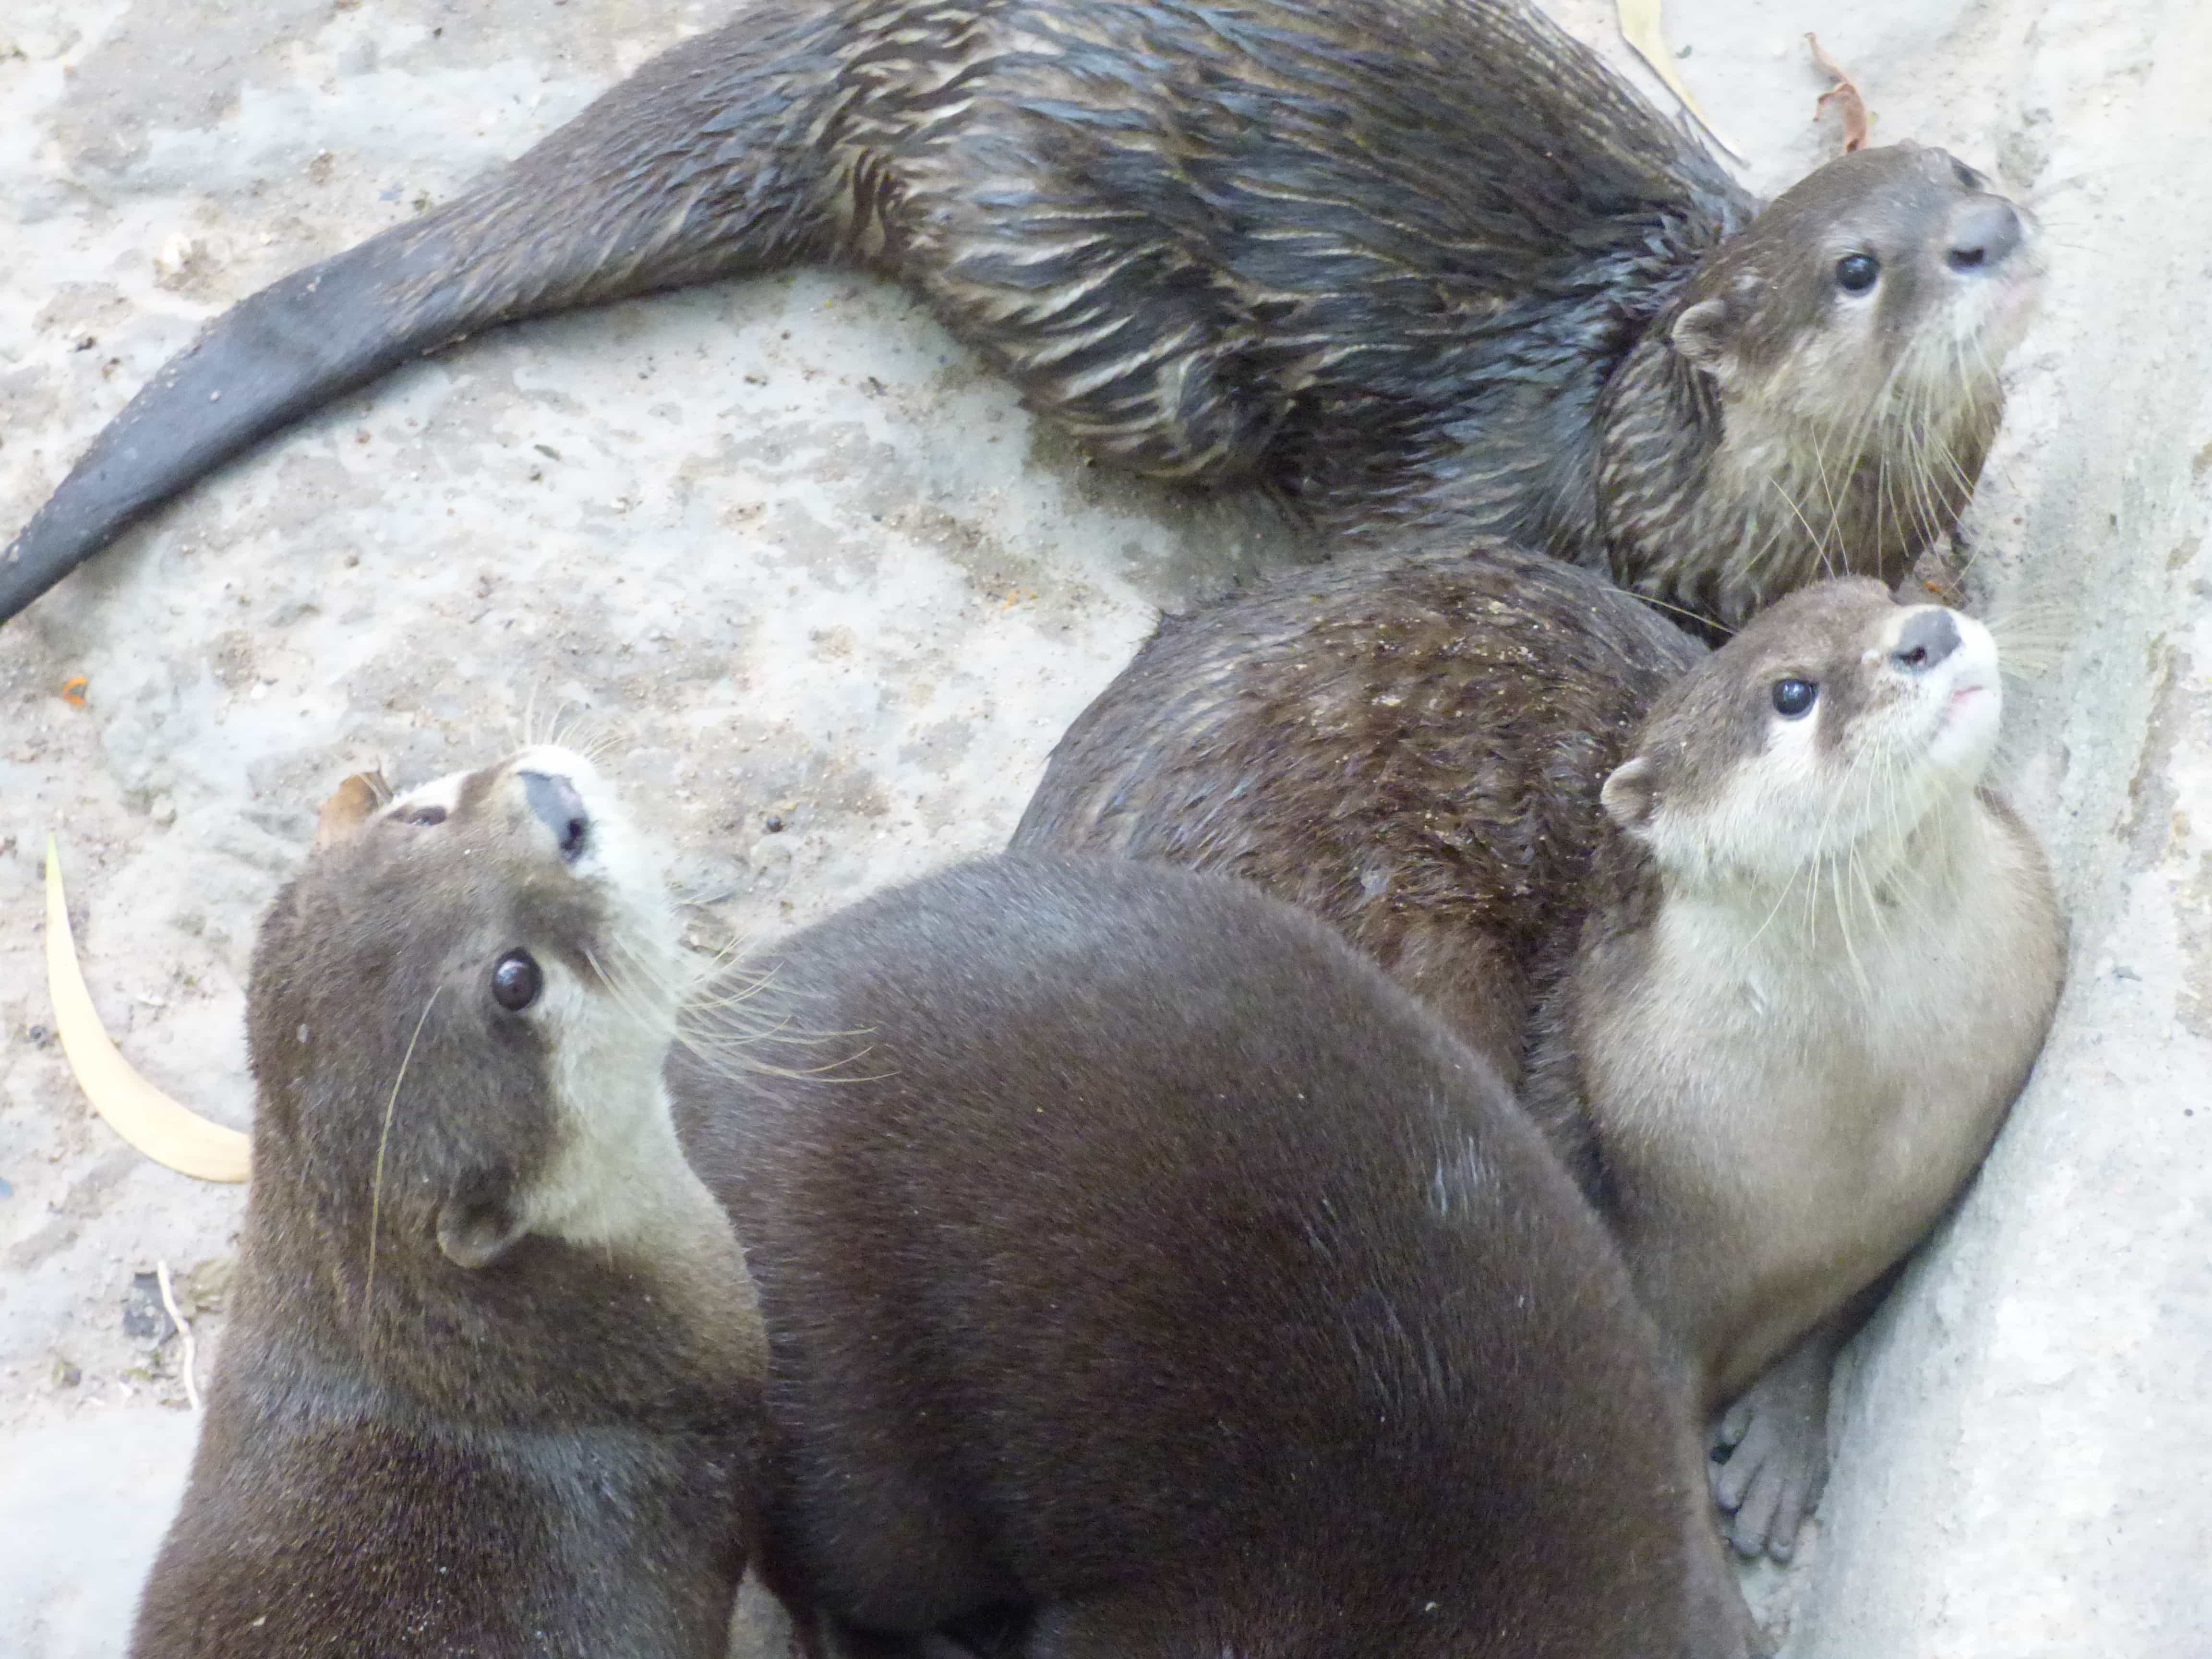 otters at the WAR rescue centre